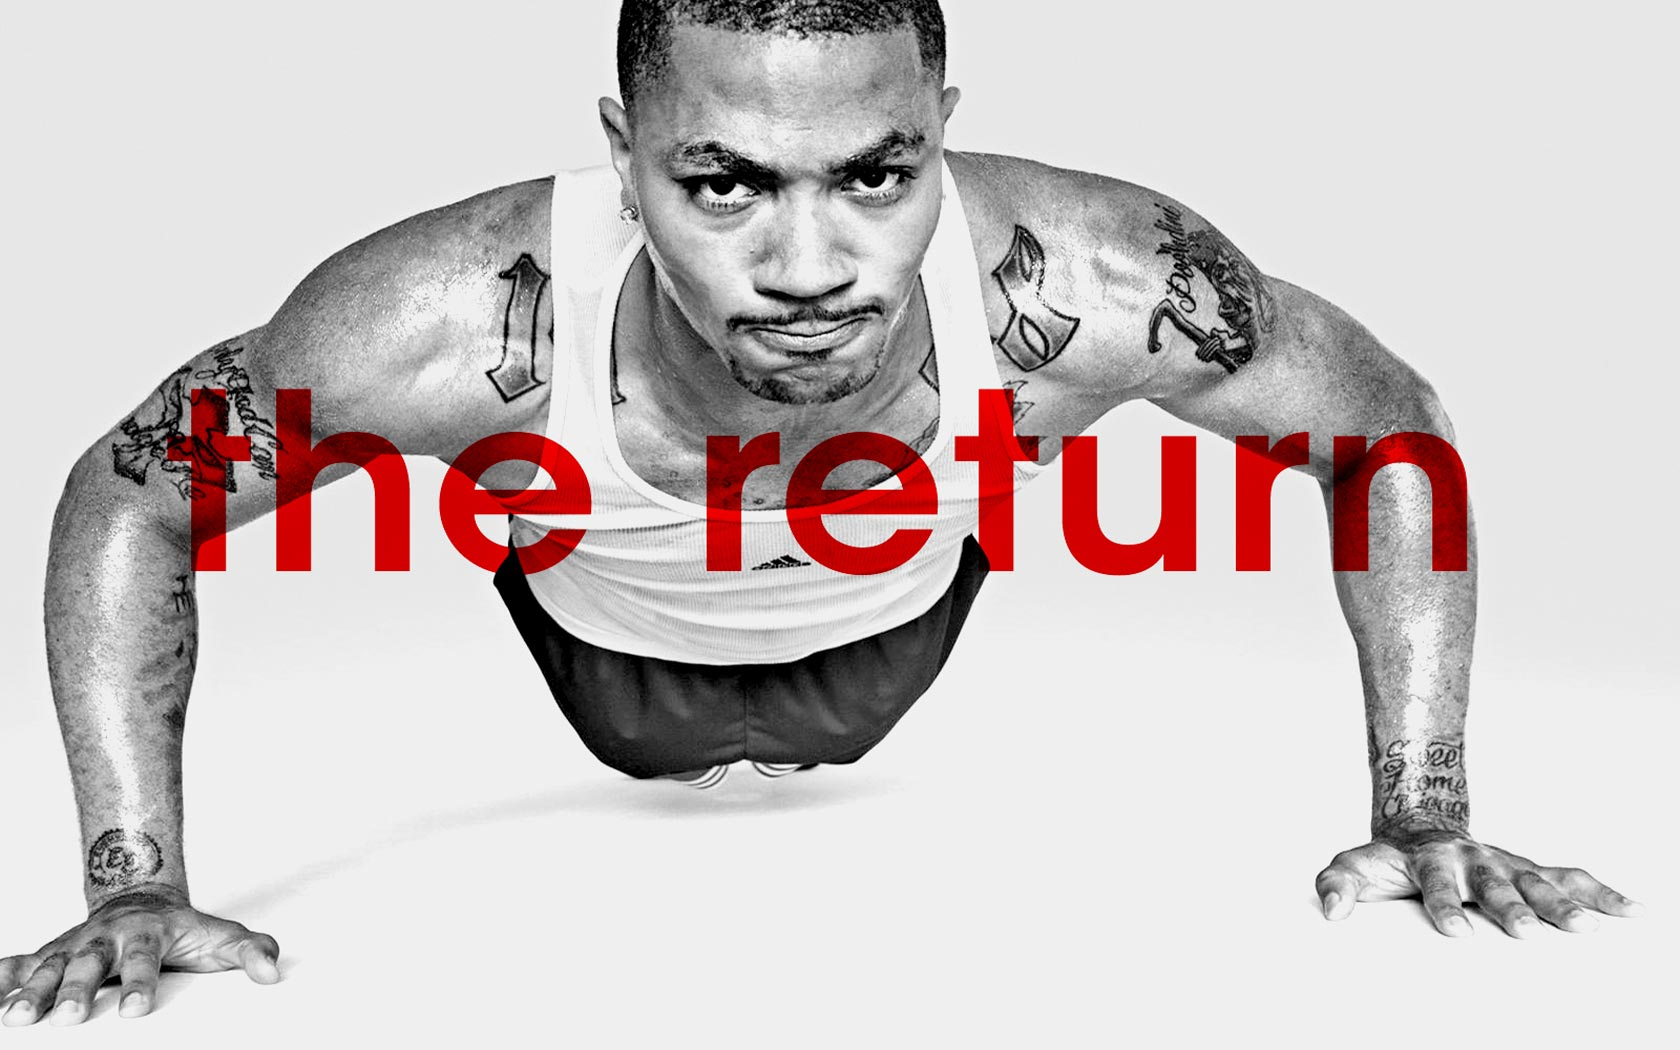 f321ff525b9d Derrick Rose Return 2012 1680x1050 Wallpaper